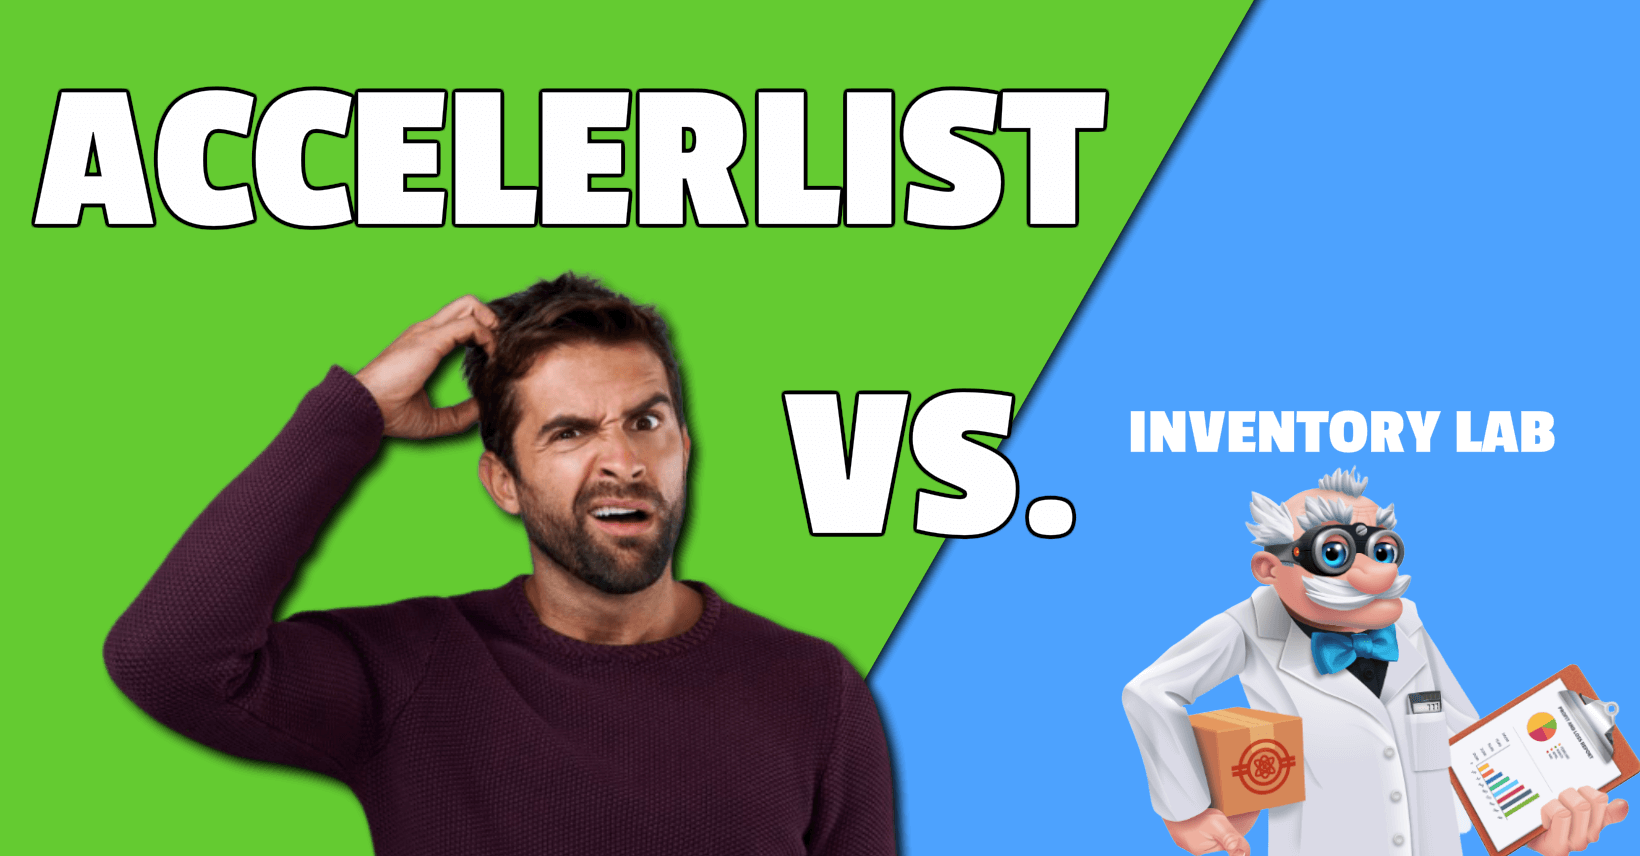 2019 Review: Inventory Lab vs AccelerList